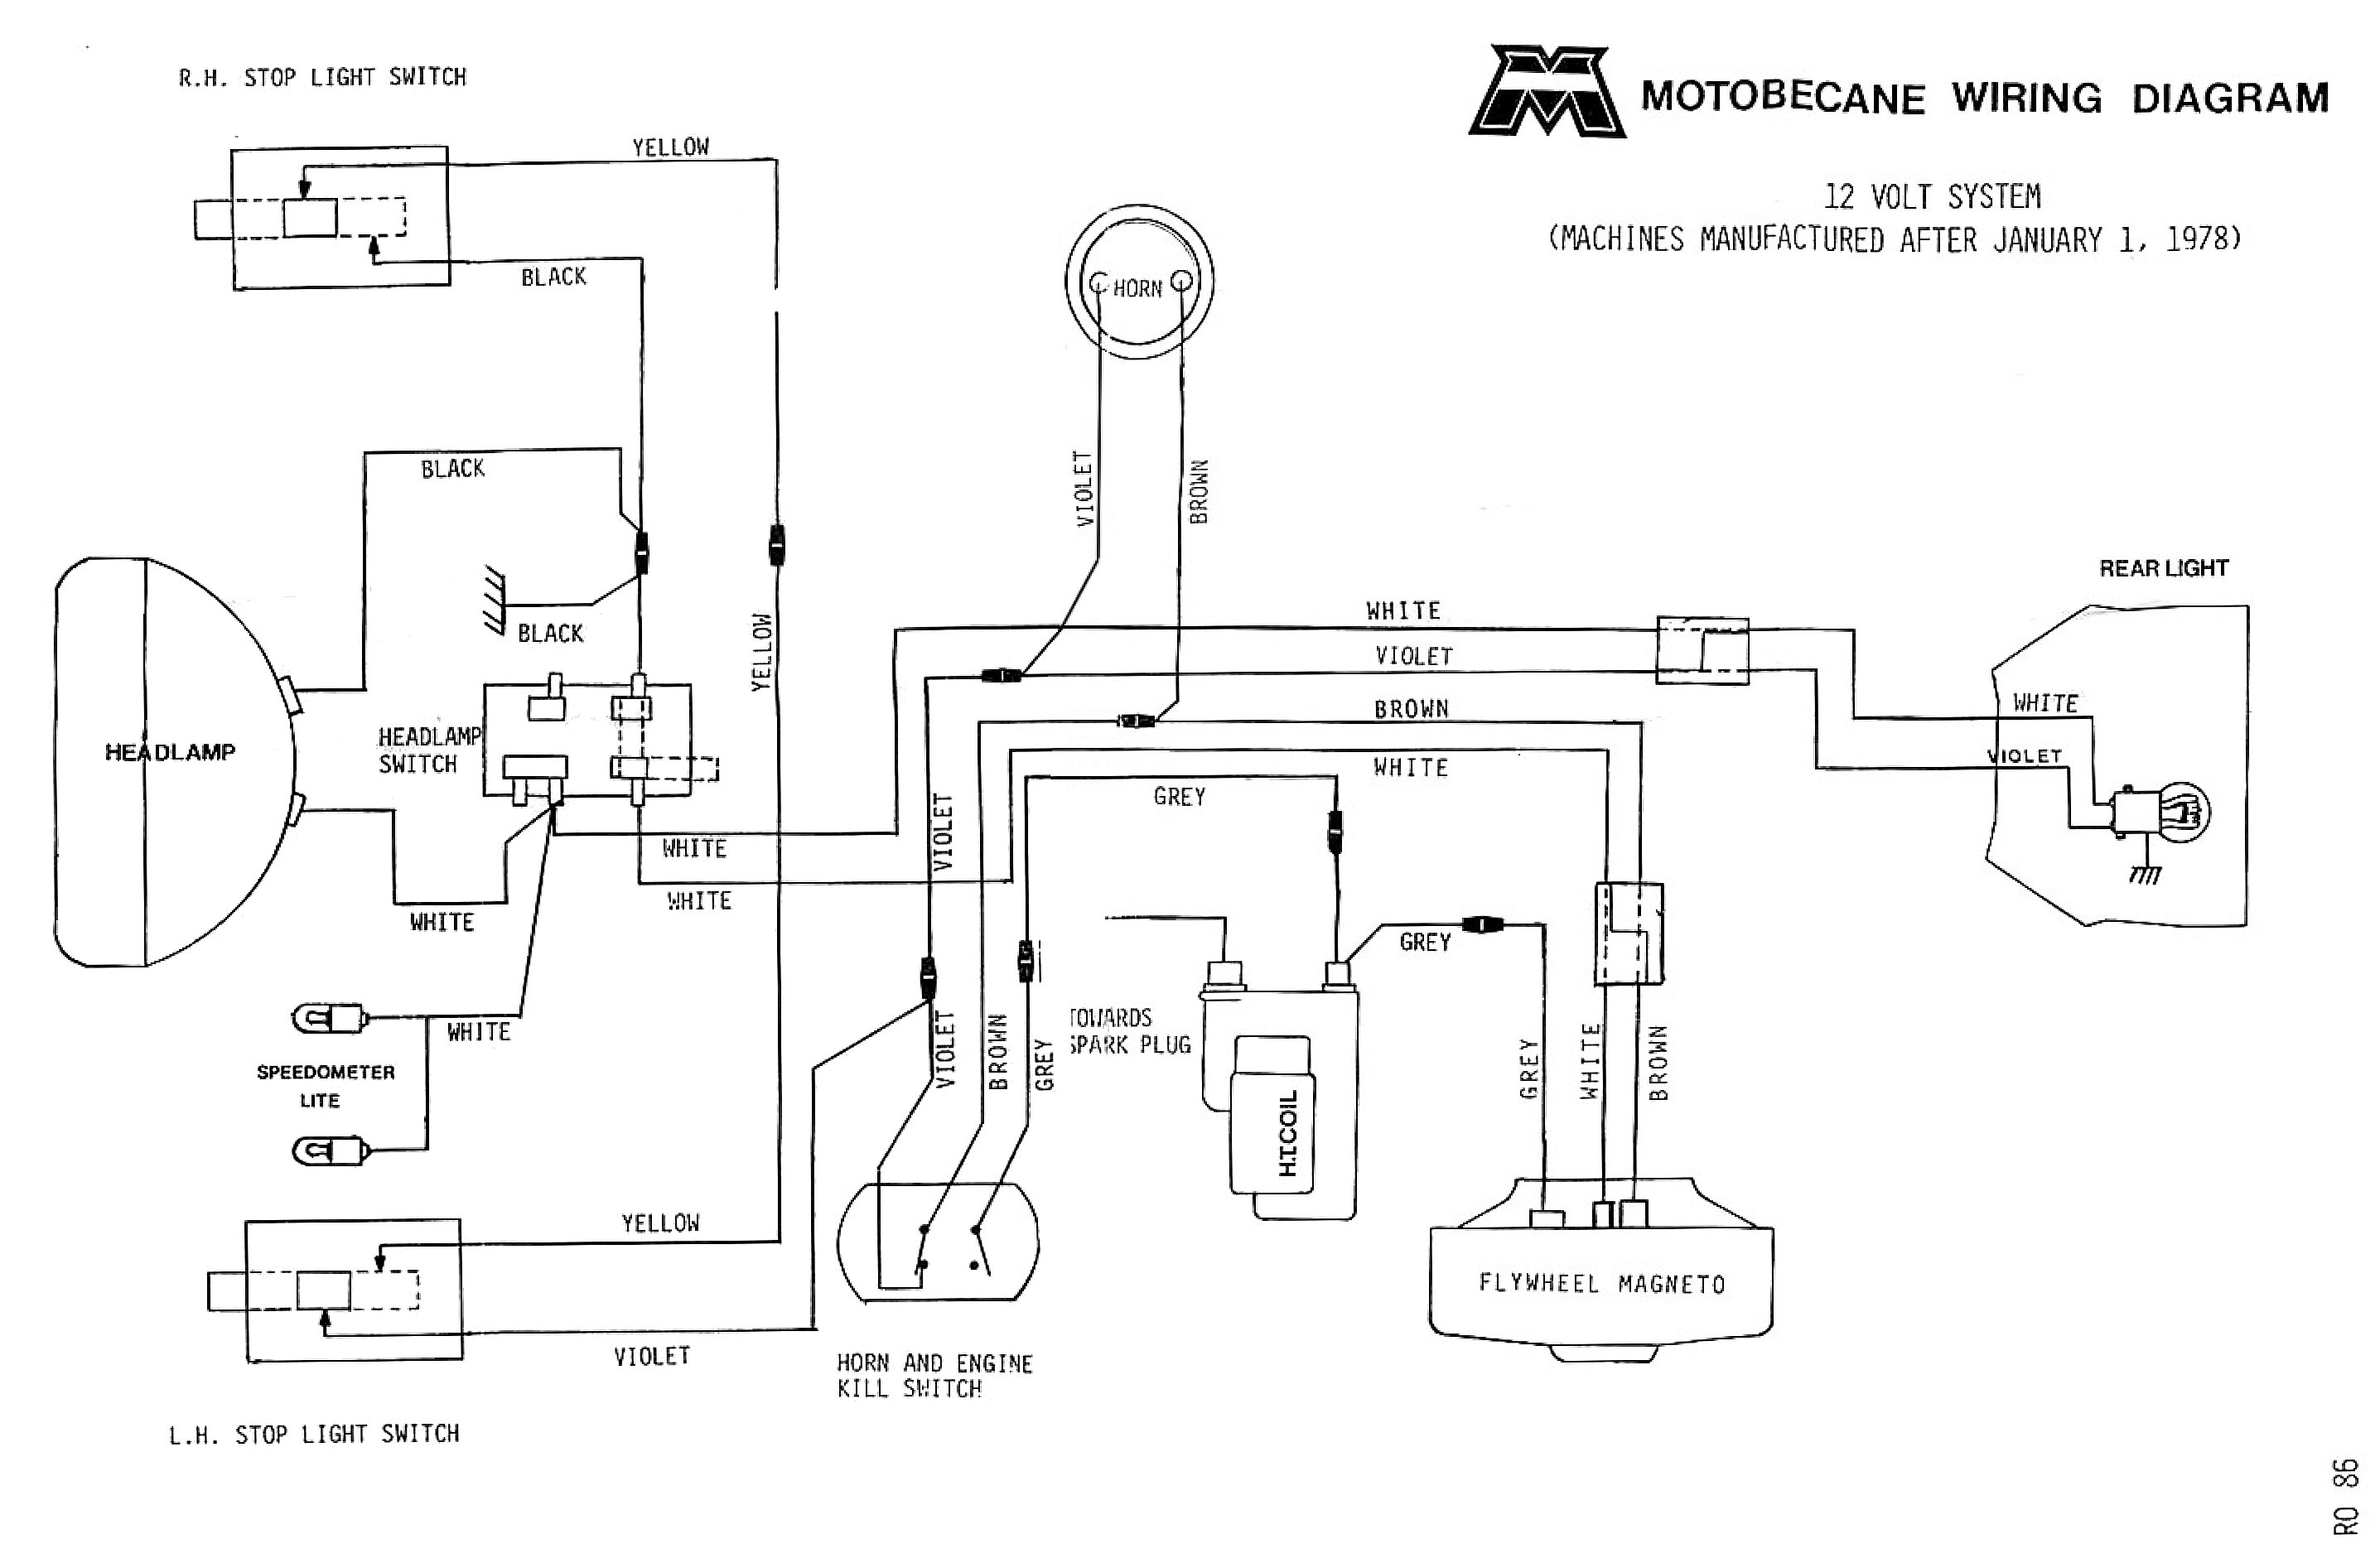 Ford 8n Wiring Harness - Wiring Diagram & Cable Management A Model For Ford Tractor Wiring Diagram on